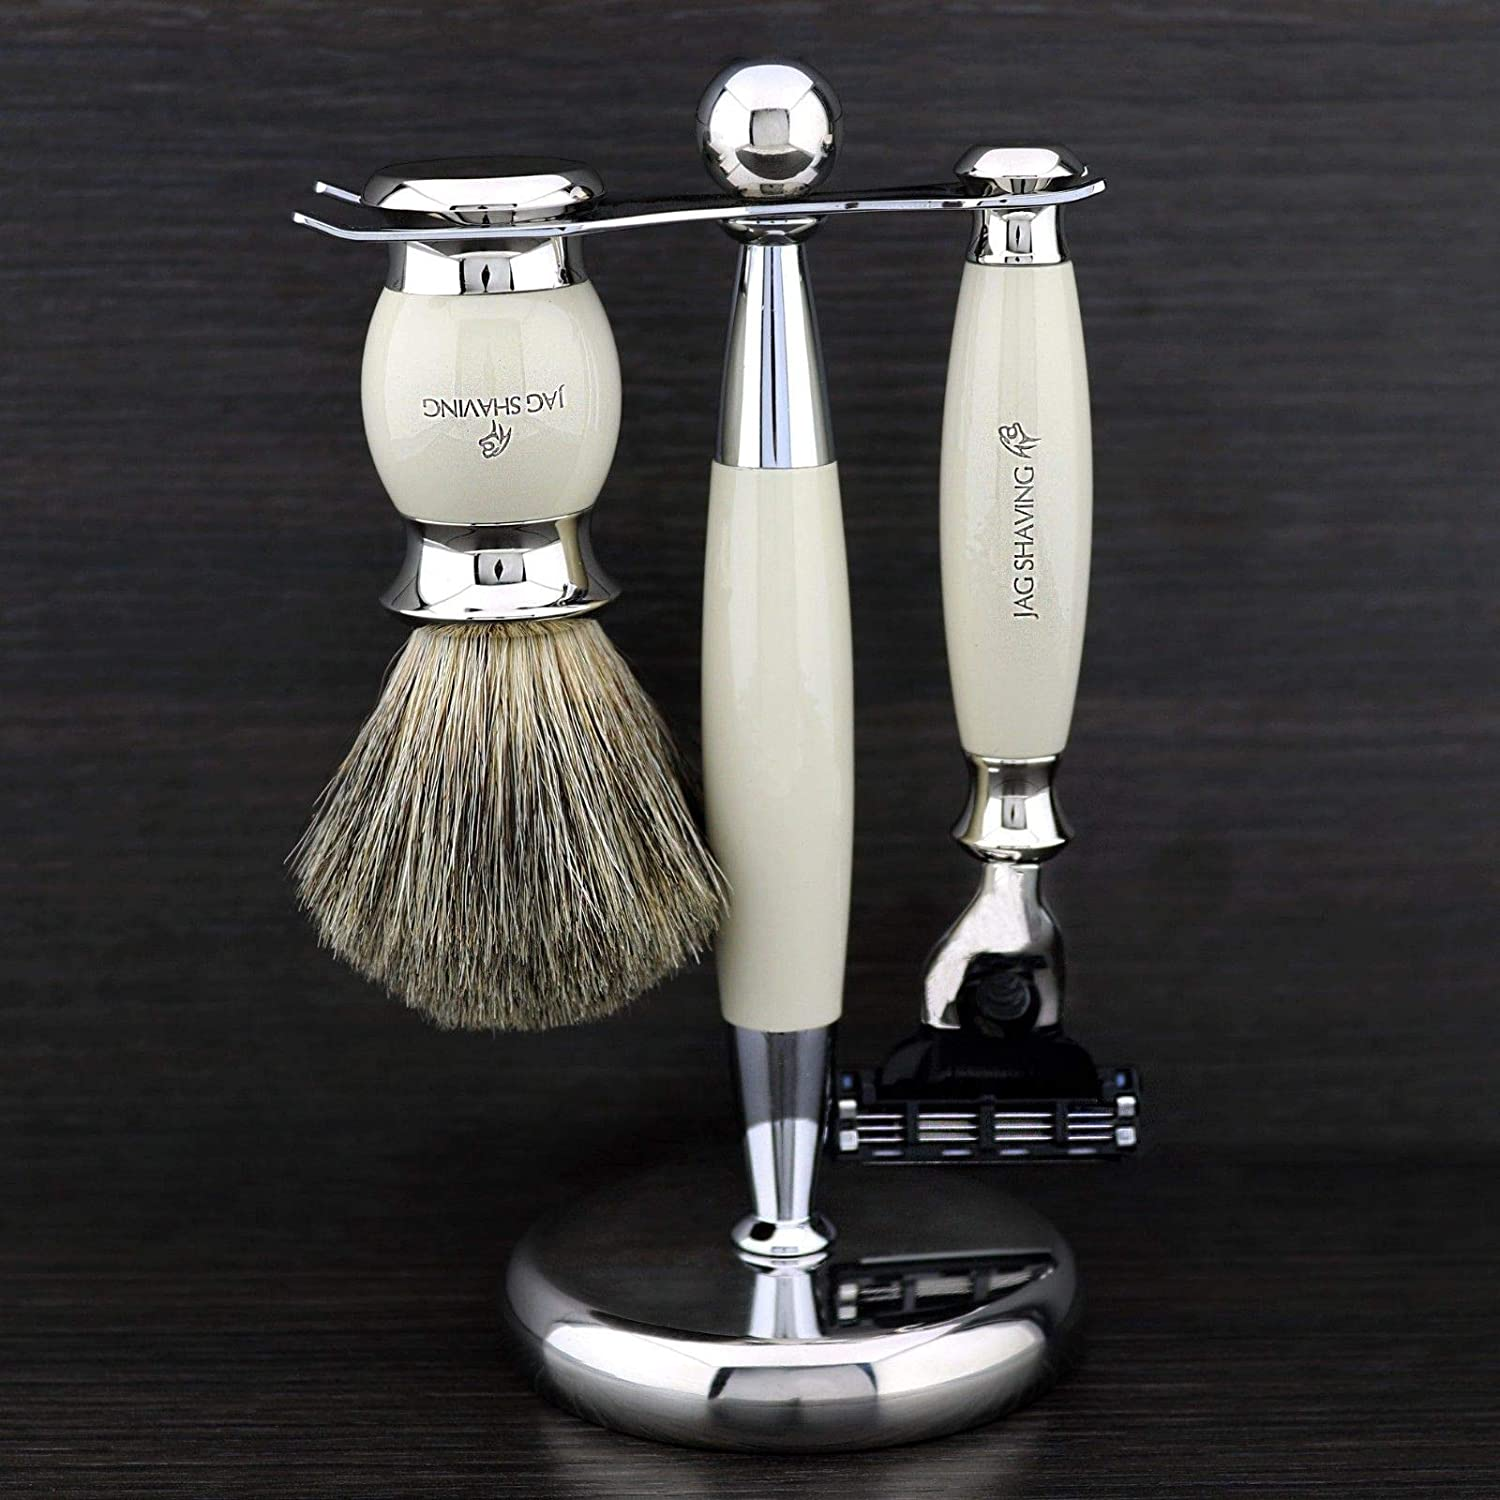 Premium Set of Super Badger Shaving Brush & Gillette Mach3 Razor + Double Shaving Stand for Razor & Brush > A Shaving & Grooming Kit by JAGSHAVING in Ivory Colour. Made in England - Perfect as a Gift this Christmas